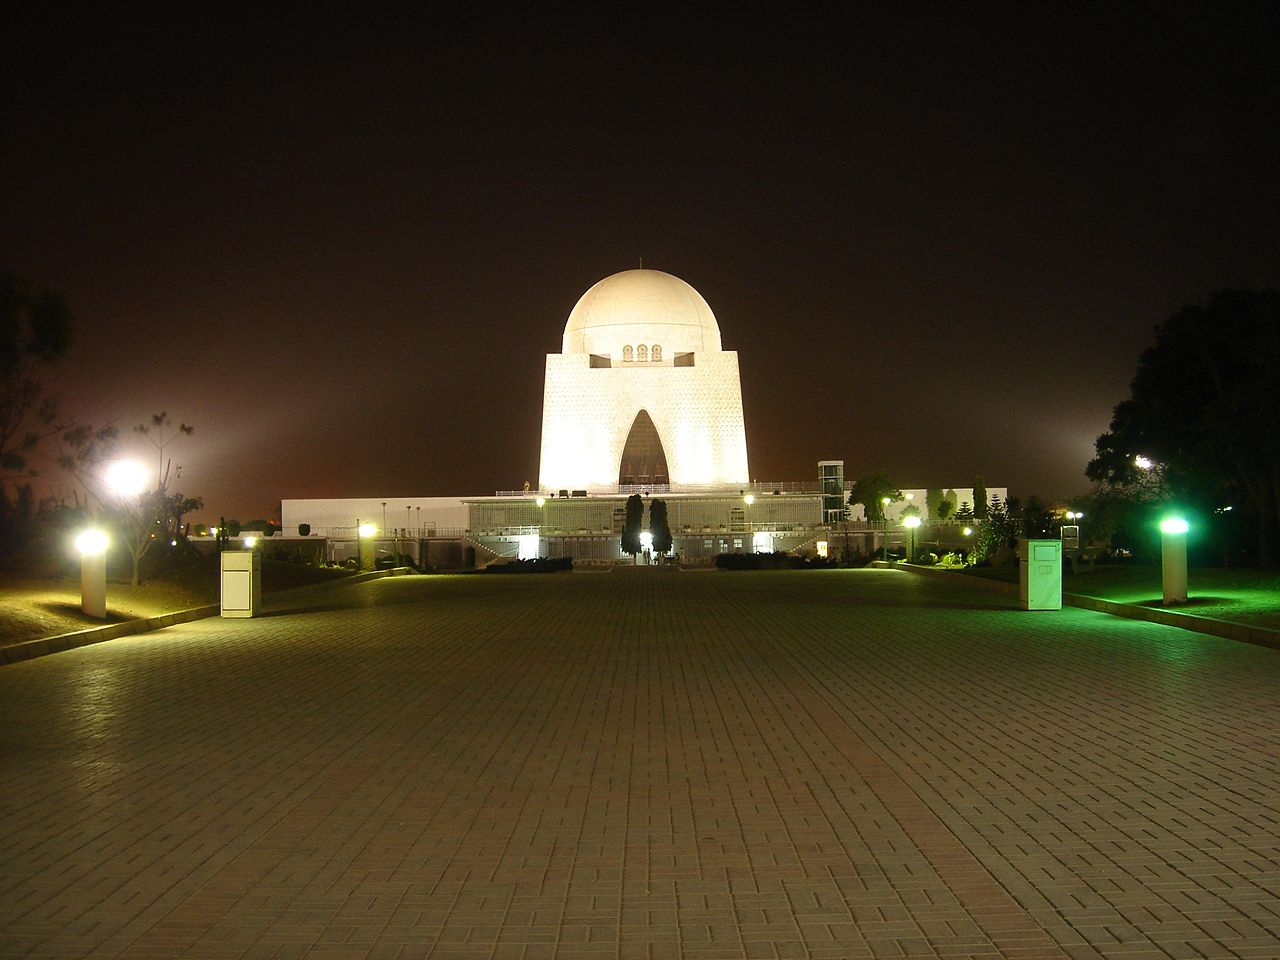 Mazar e quaid dating point